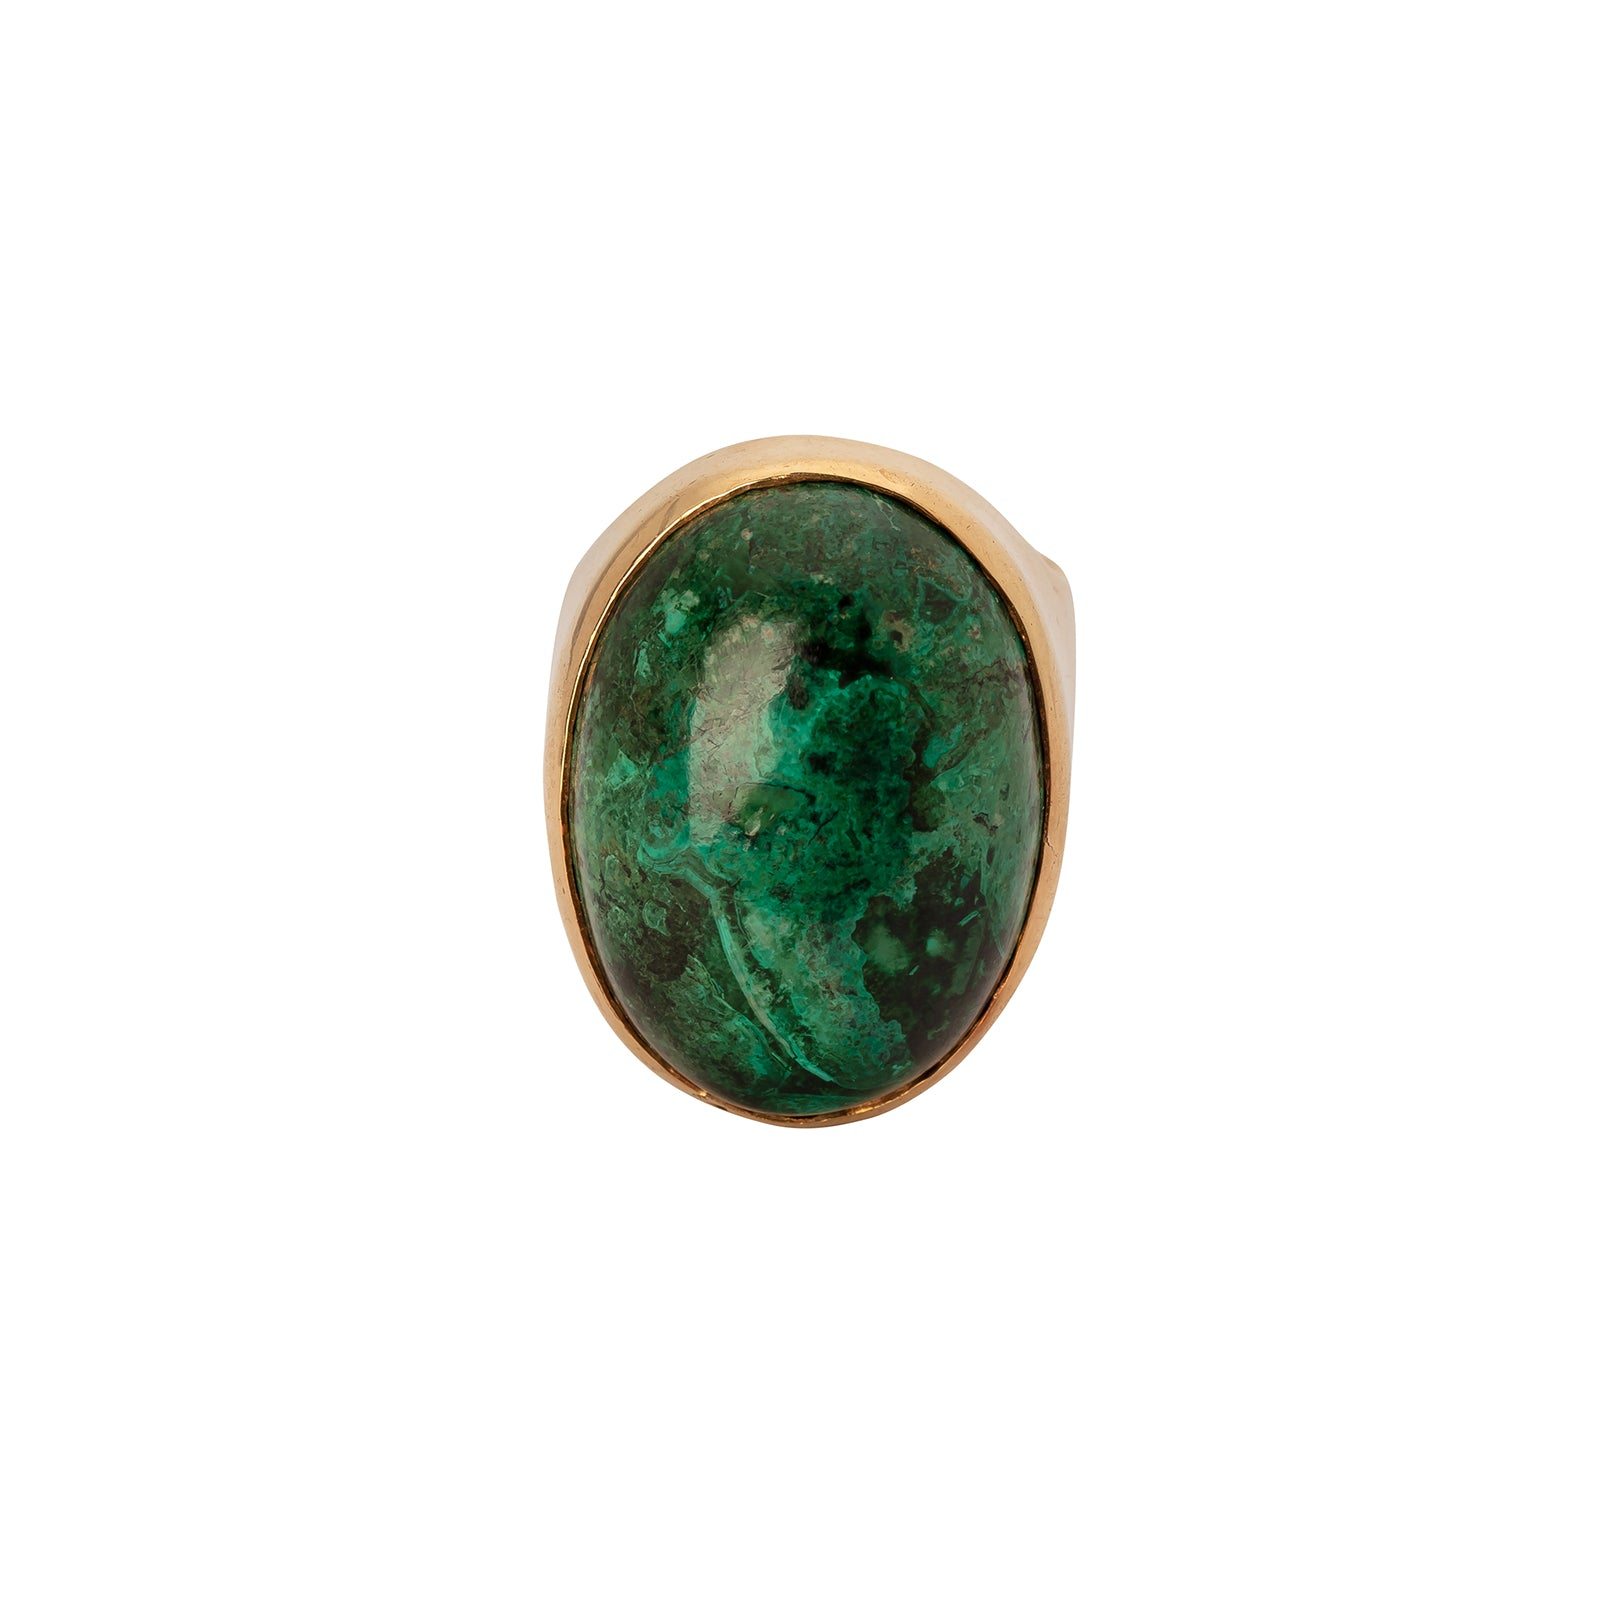 Antique & Vintage Jewelry Oval Malachite Ring - Rings - Broken English Jewelry